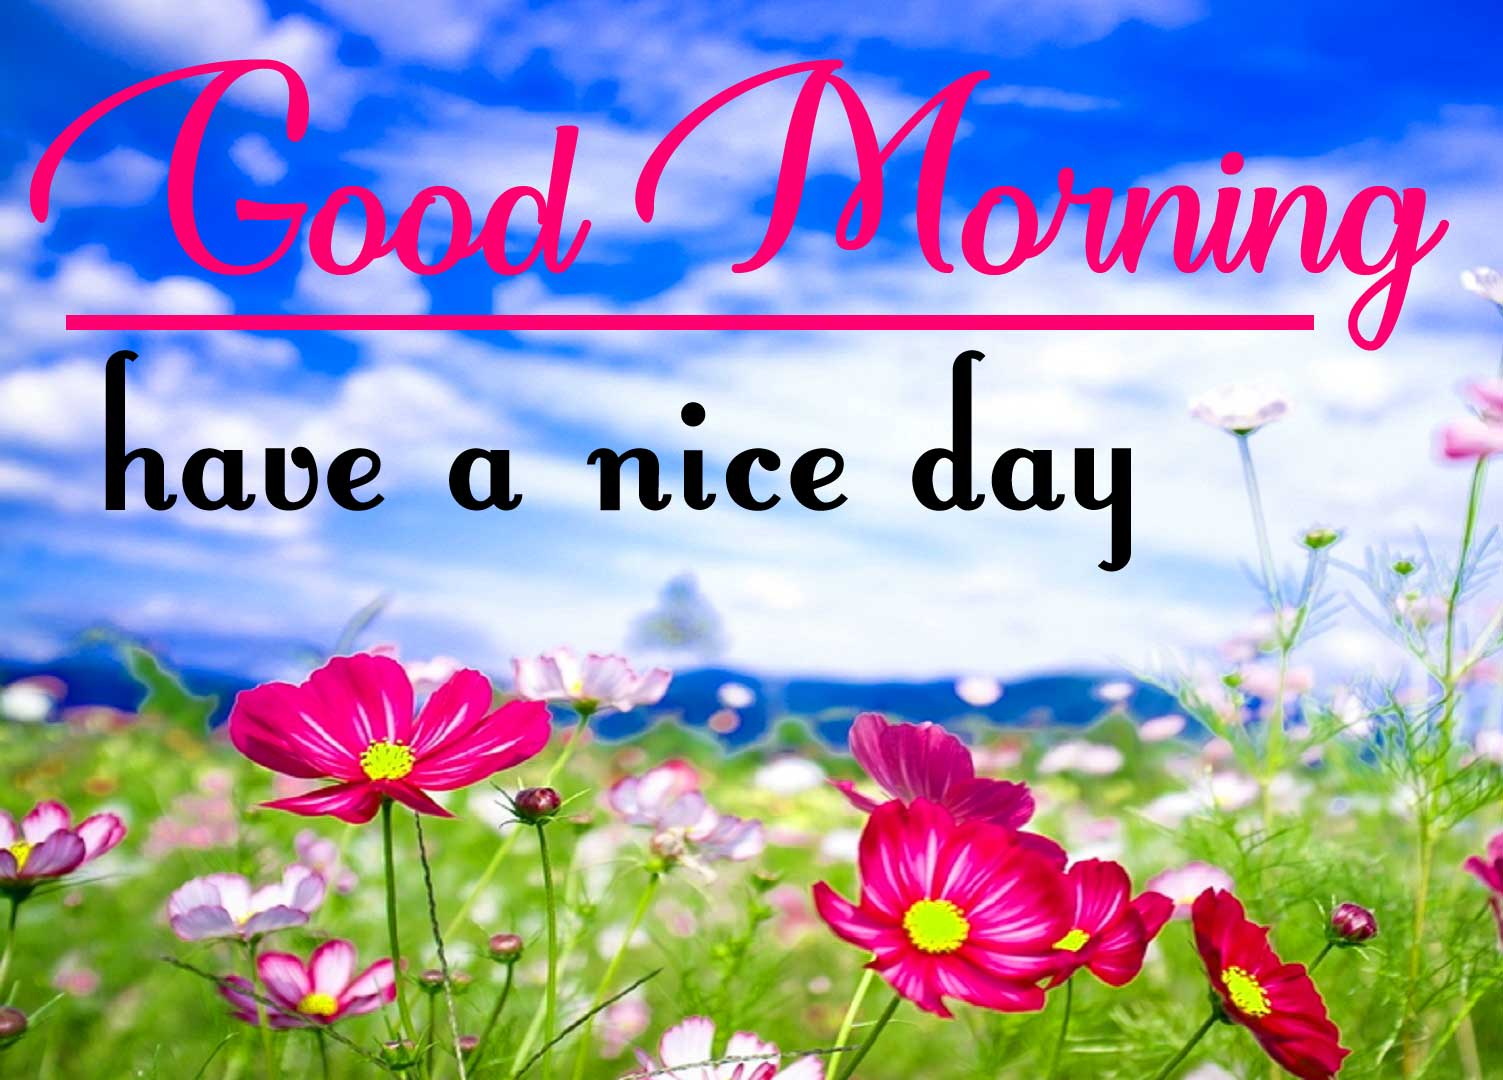 Special Good Morning Pics Free With Flower